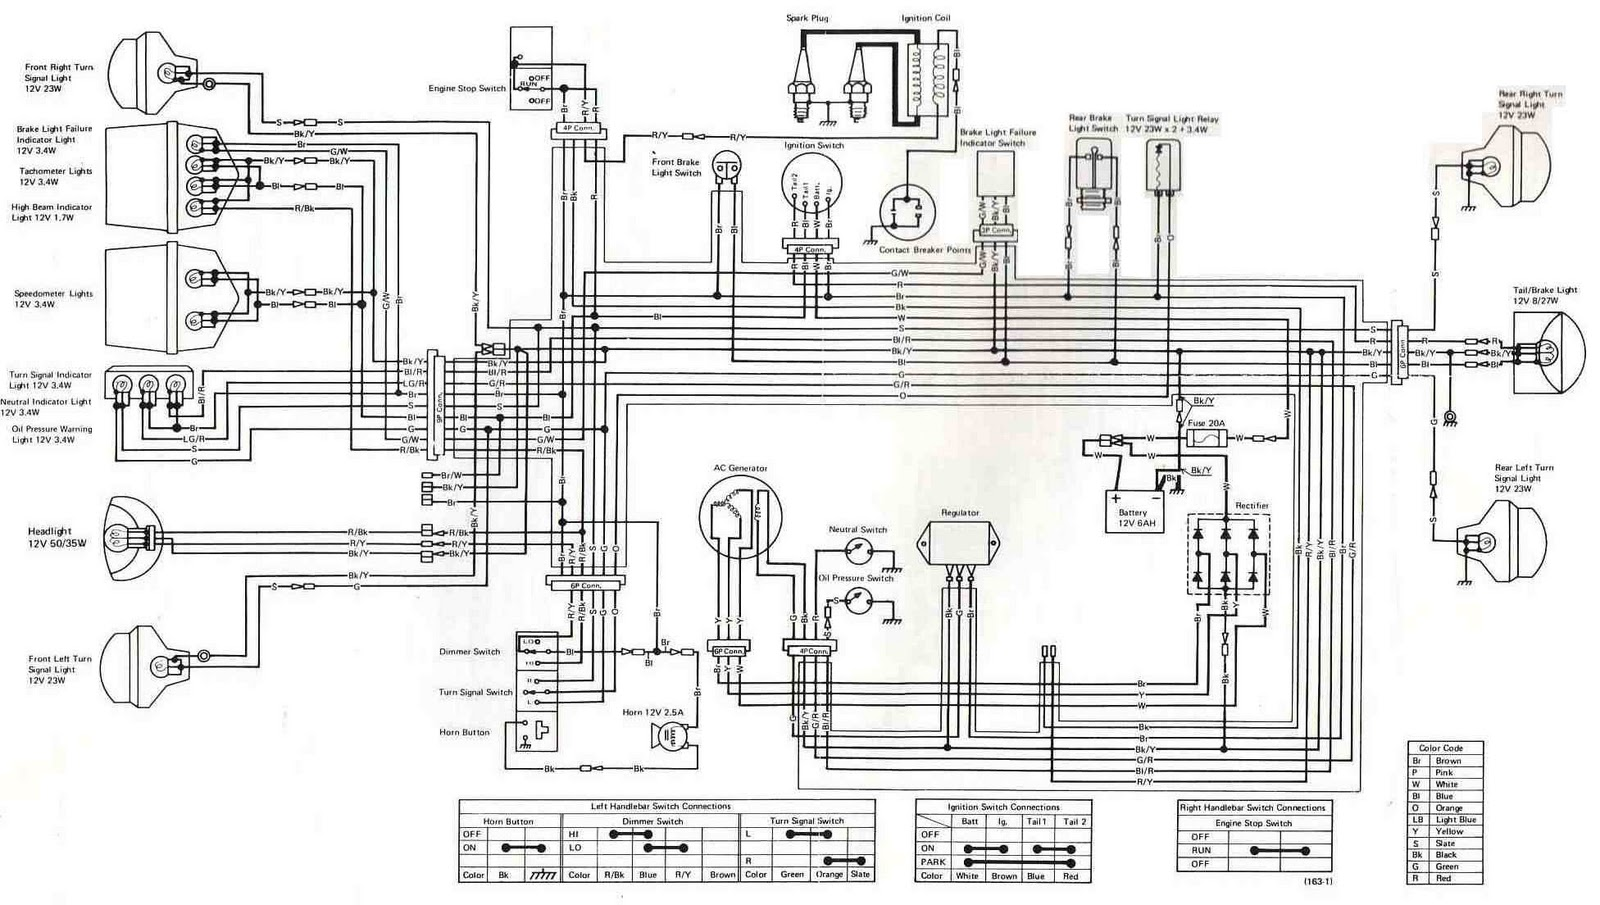 95 Kawasaki 750 Wire Diagram - Wiring Diagram Verified on